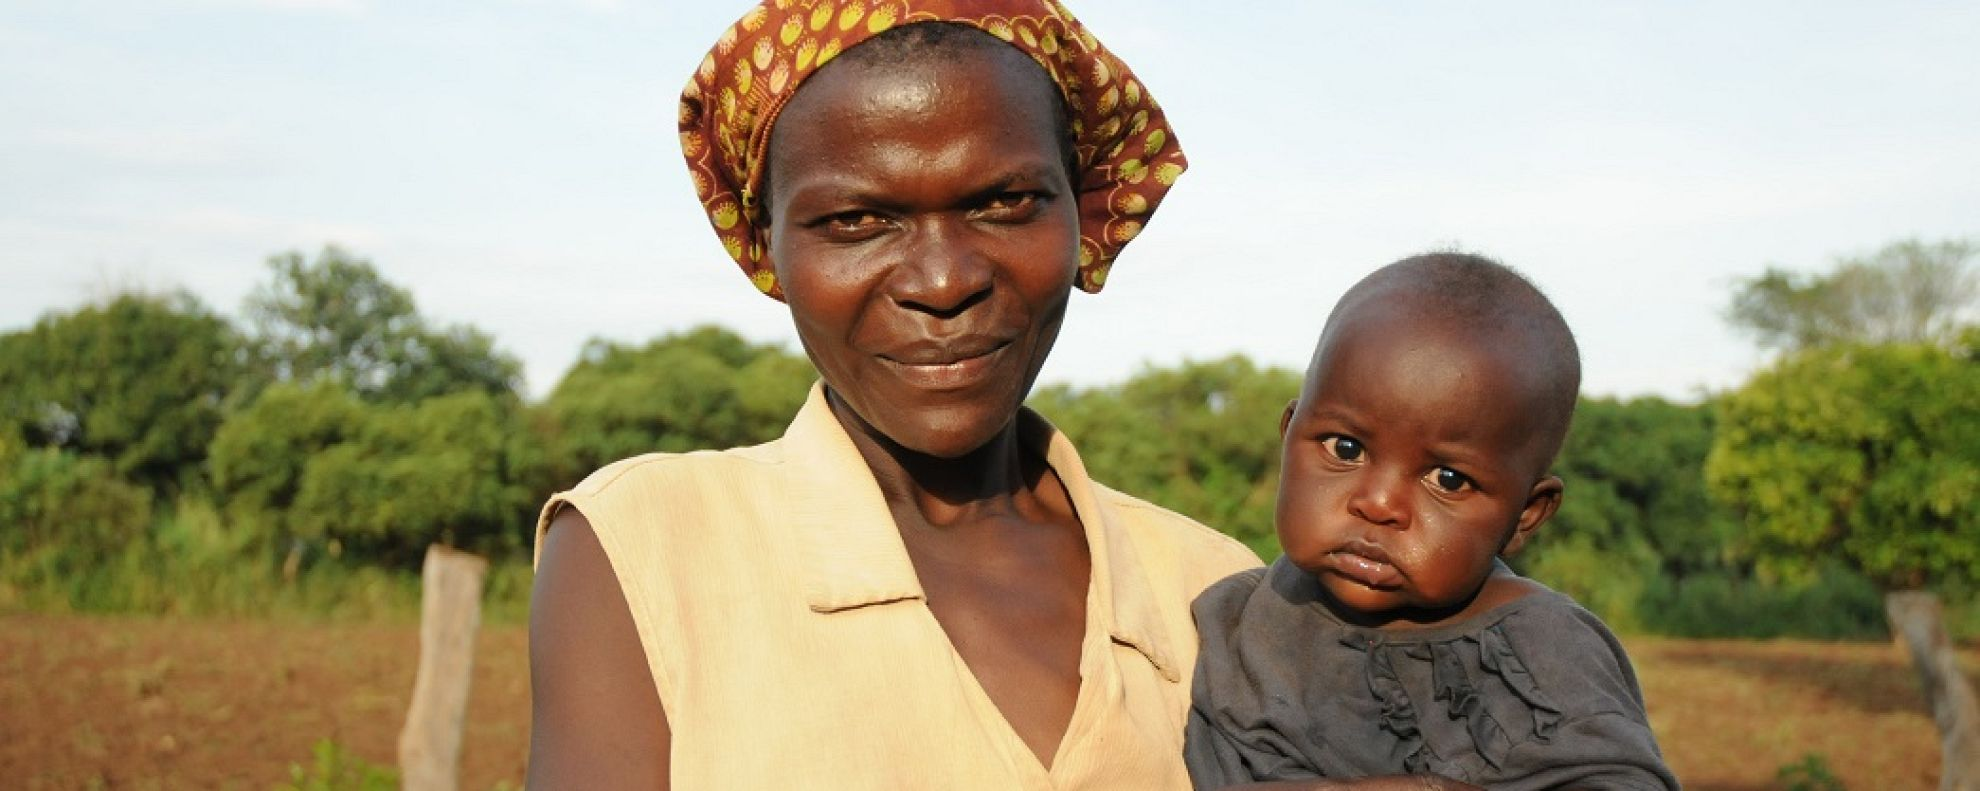 Latest News Panel call for sustained investment to build on malaria success of the past 15 years